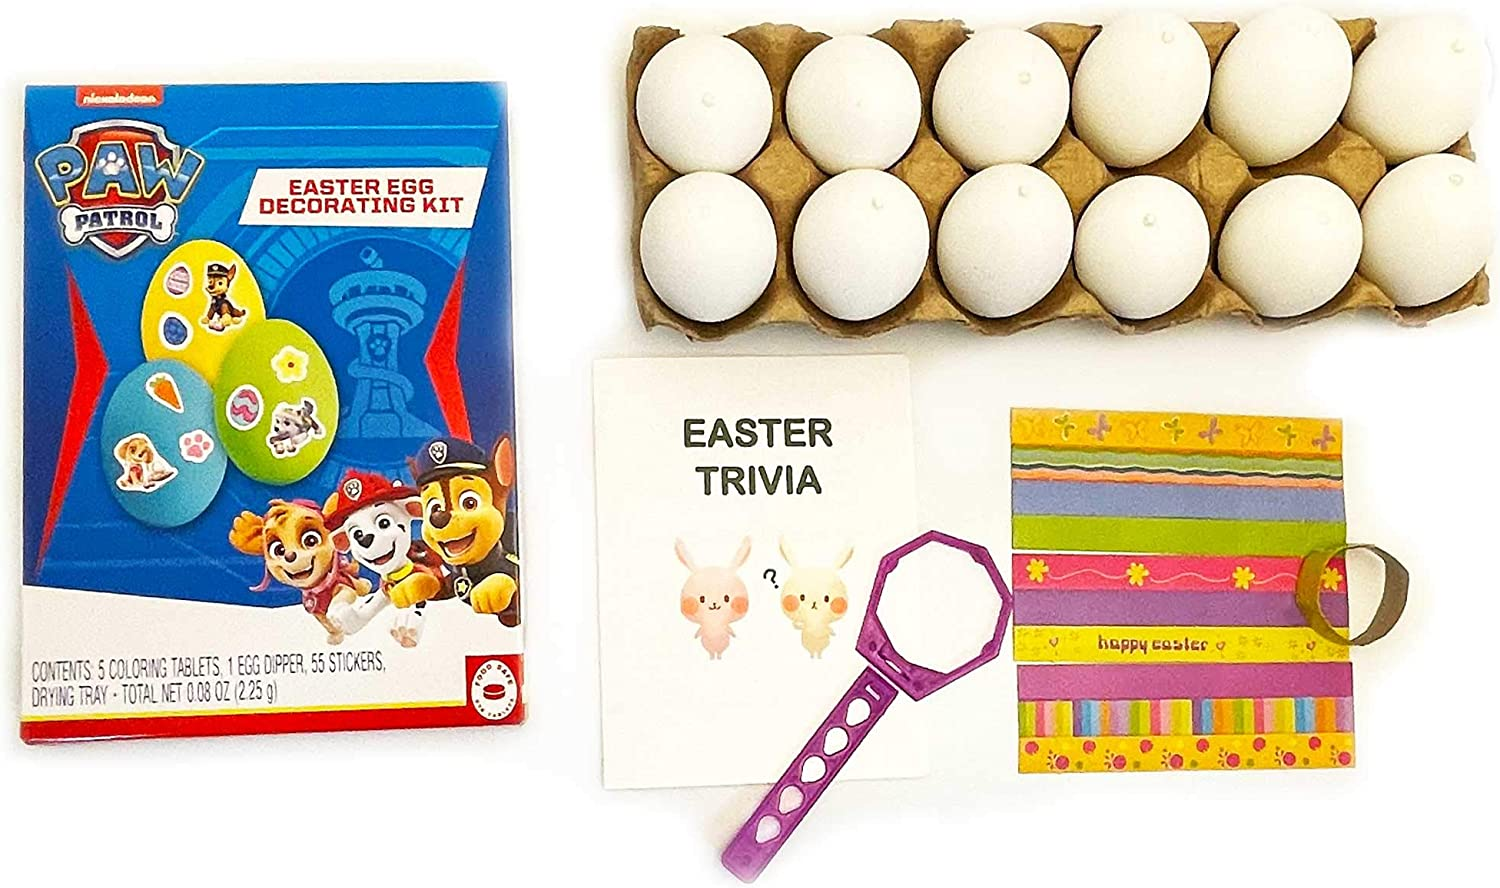 Easter Egg Decorating DIY Dyeing Kit Bundle with 12 Plastic Eggs, 5 Non-Toxic Food Grade Coloring Tablet Dyes, 2 Egg Dipper, 55 Stickers, Drying Tray, Easter Trivia (Paw Patrol)